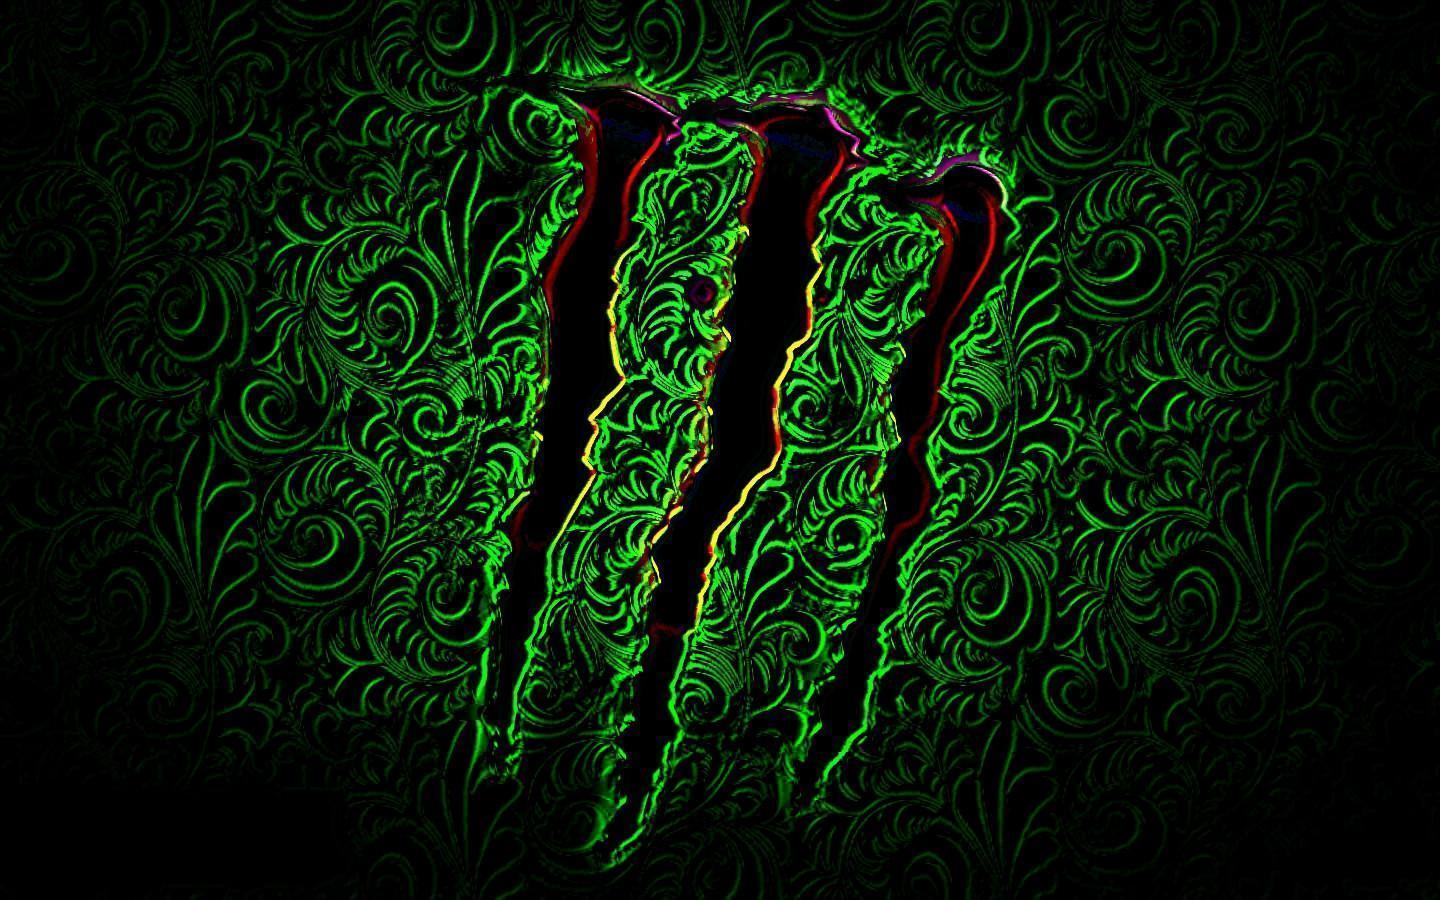 Monster Energy Girls Wallpapers 111244 Best Hd Wallpapers